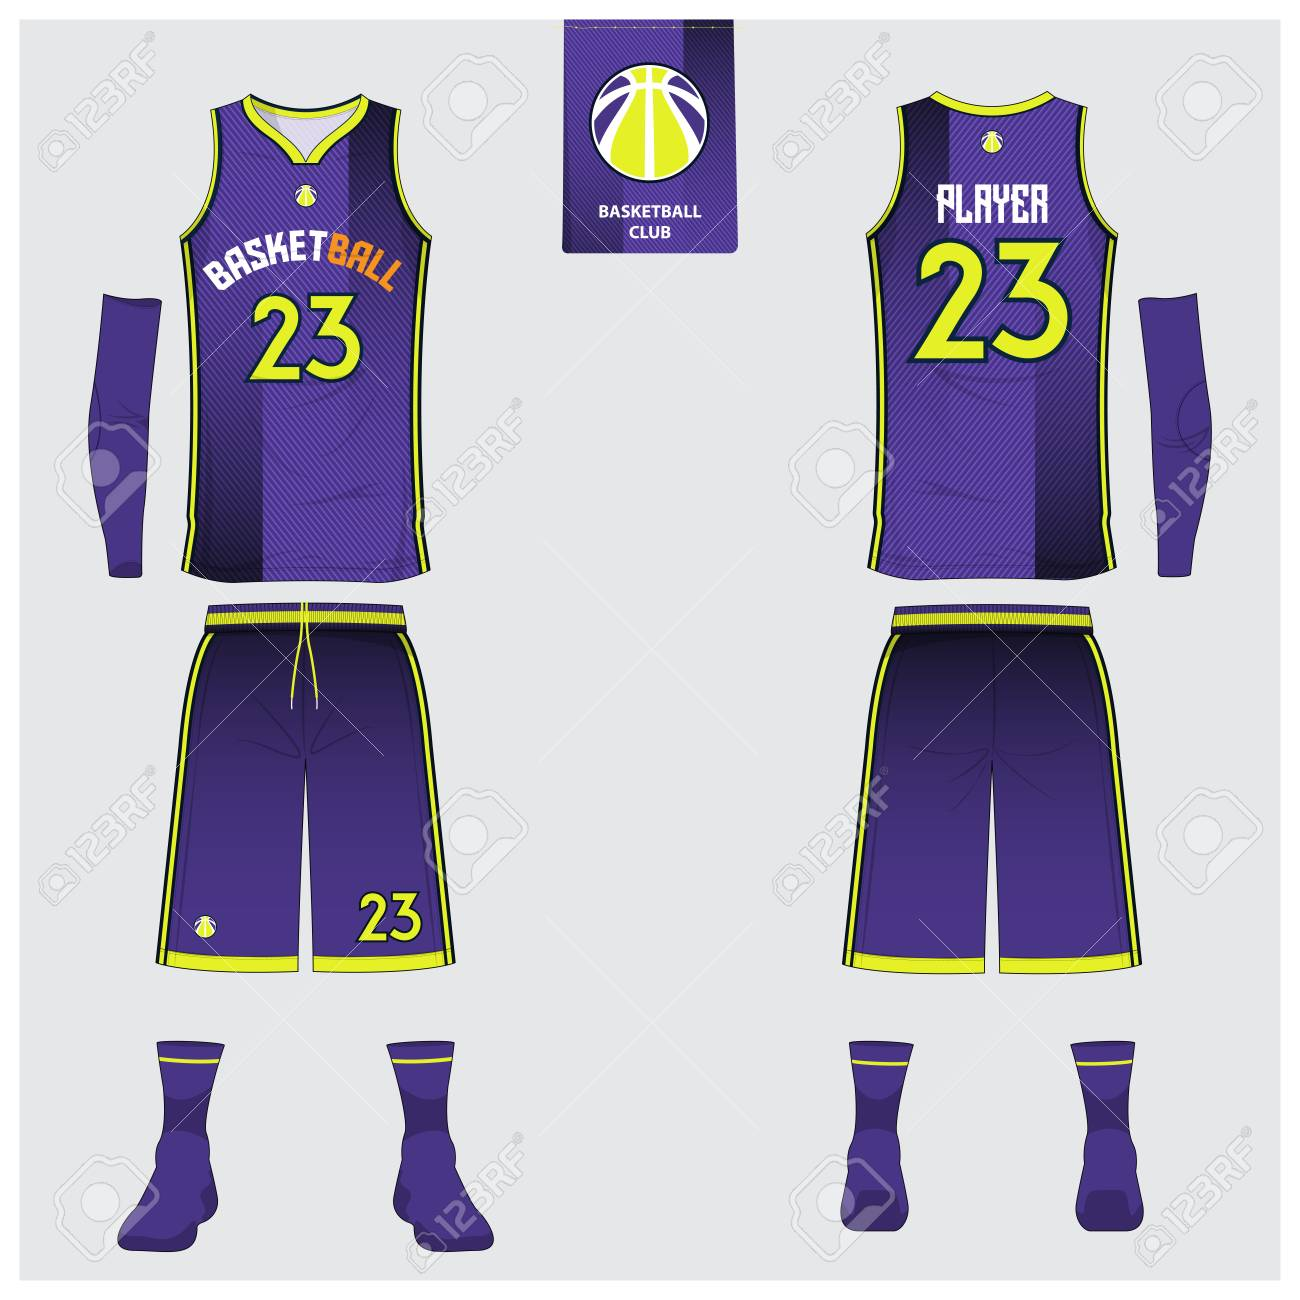 online retailer c609b 68569 Basketball uniform or sport jersey, shorts, socks template for..